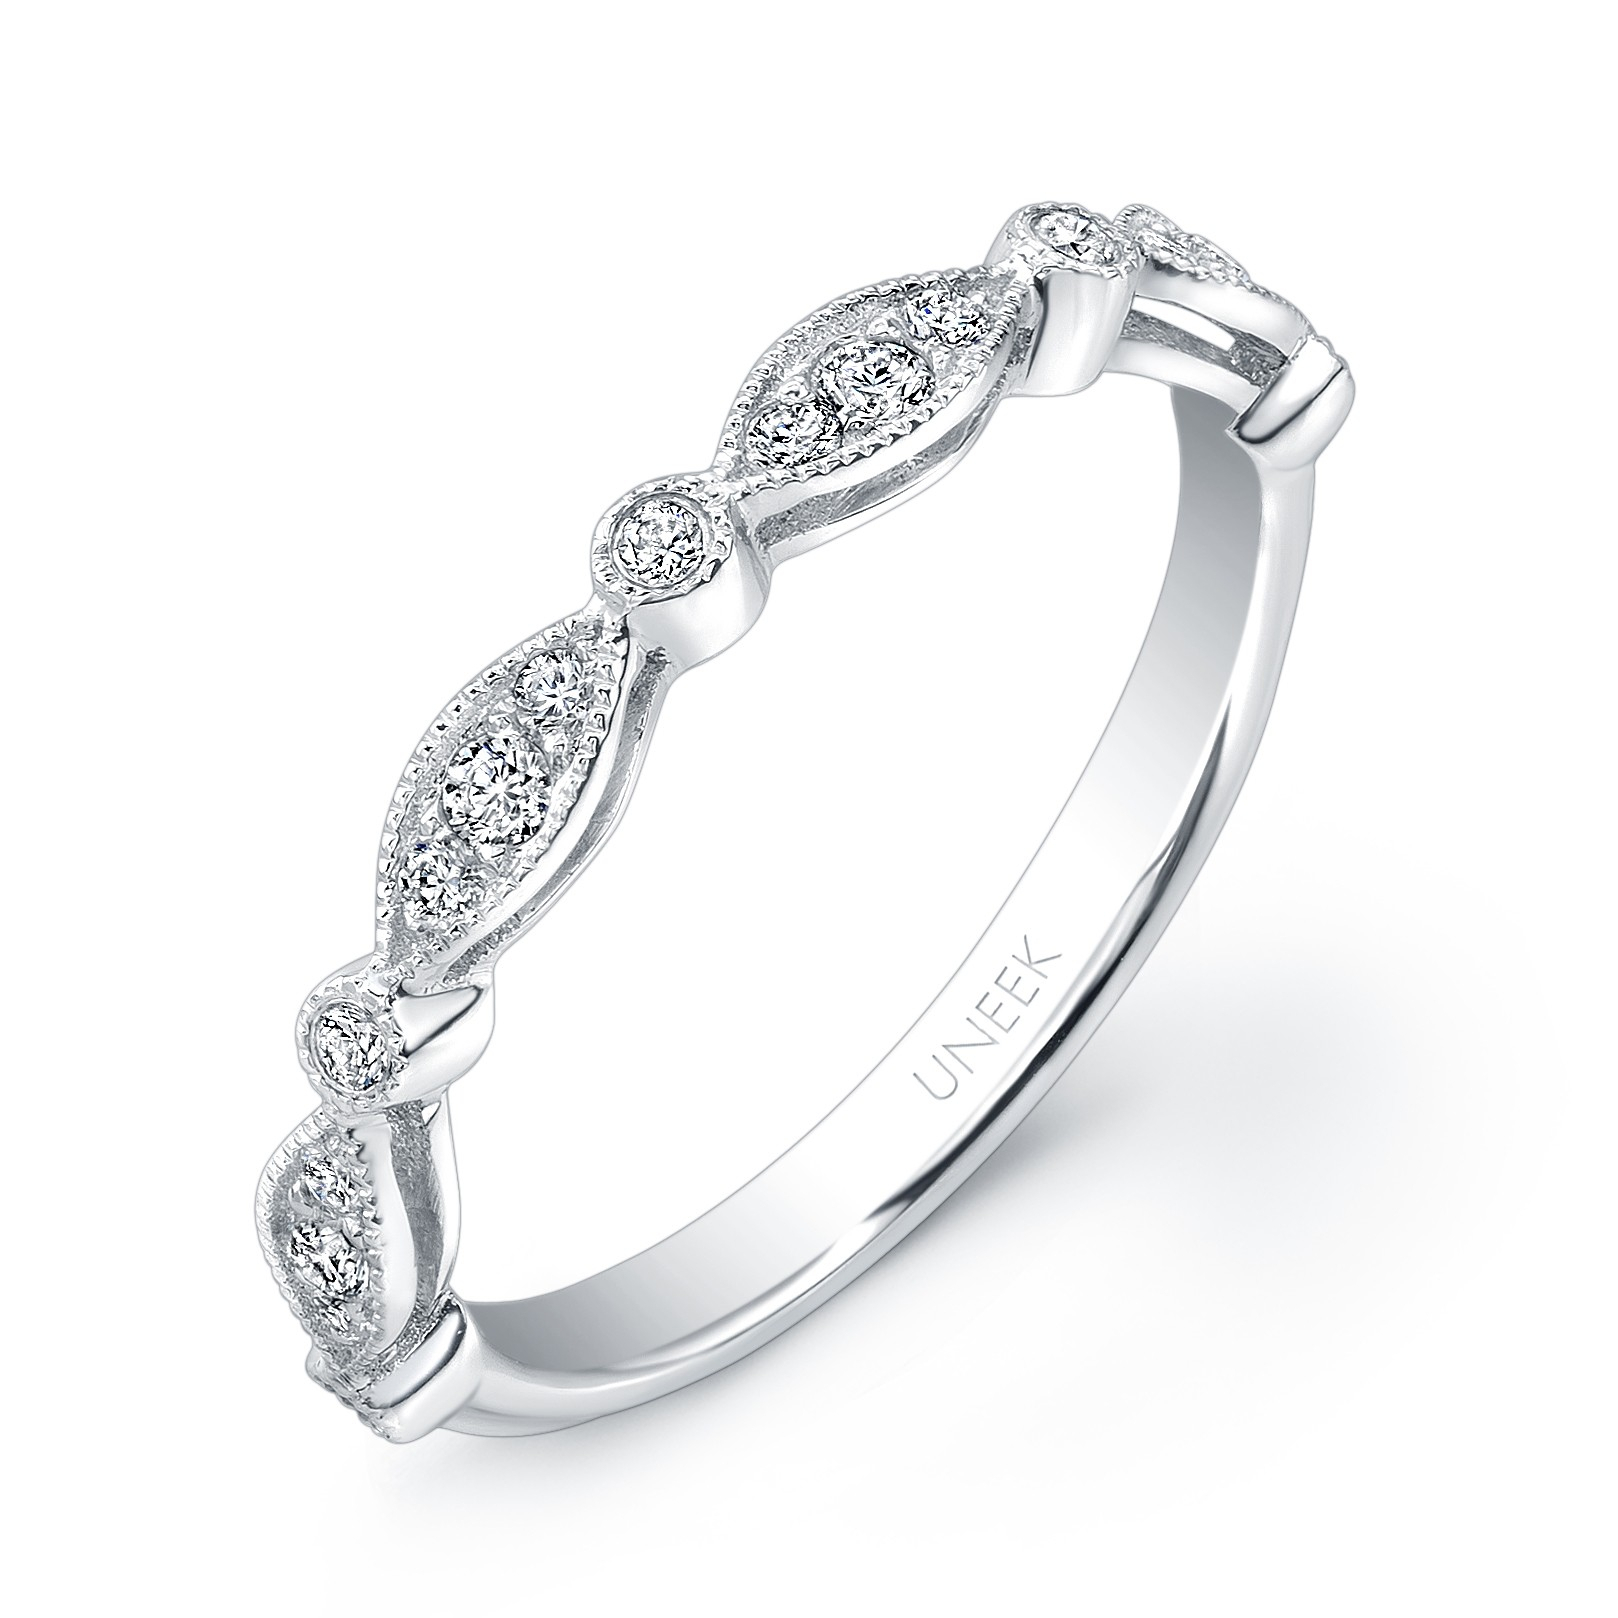 Uneek Art Nouveau Inspired Diamond Wedding Band In In Most Popular Diamond Art Deco Inspired Anniversary Bands In White Gold (Gallery 23 of 25)